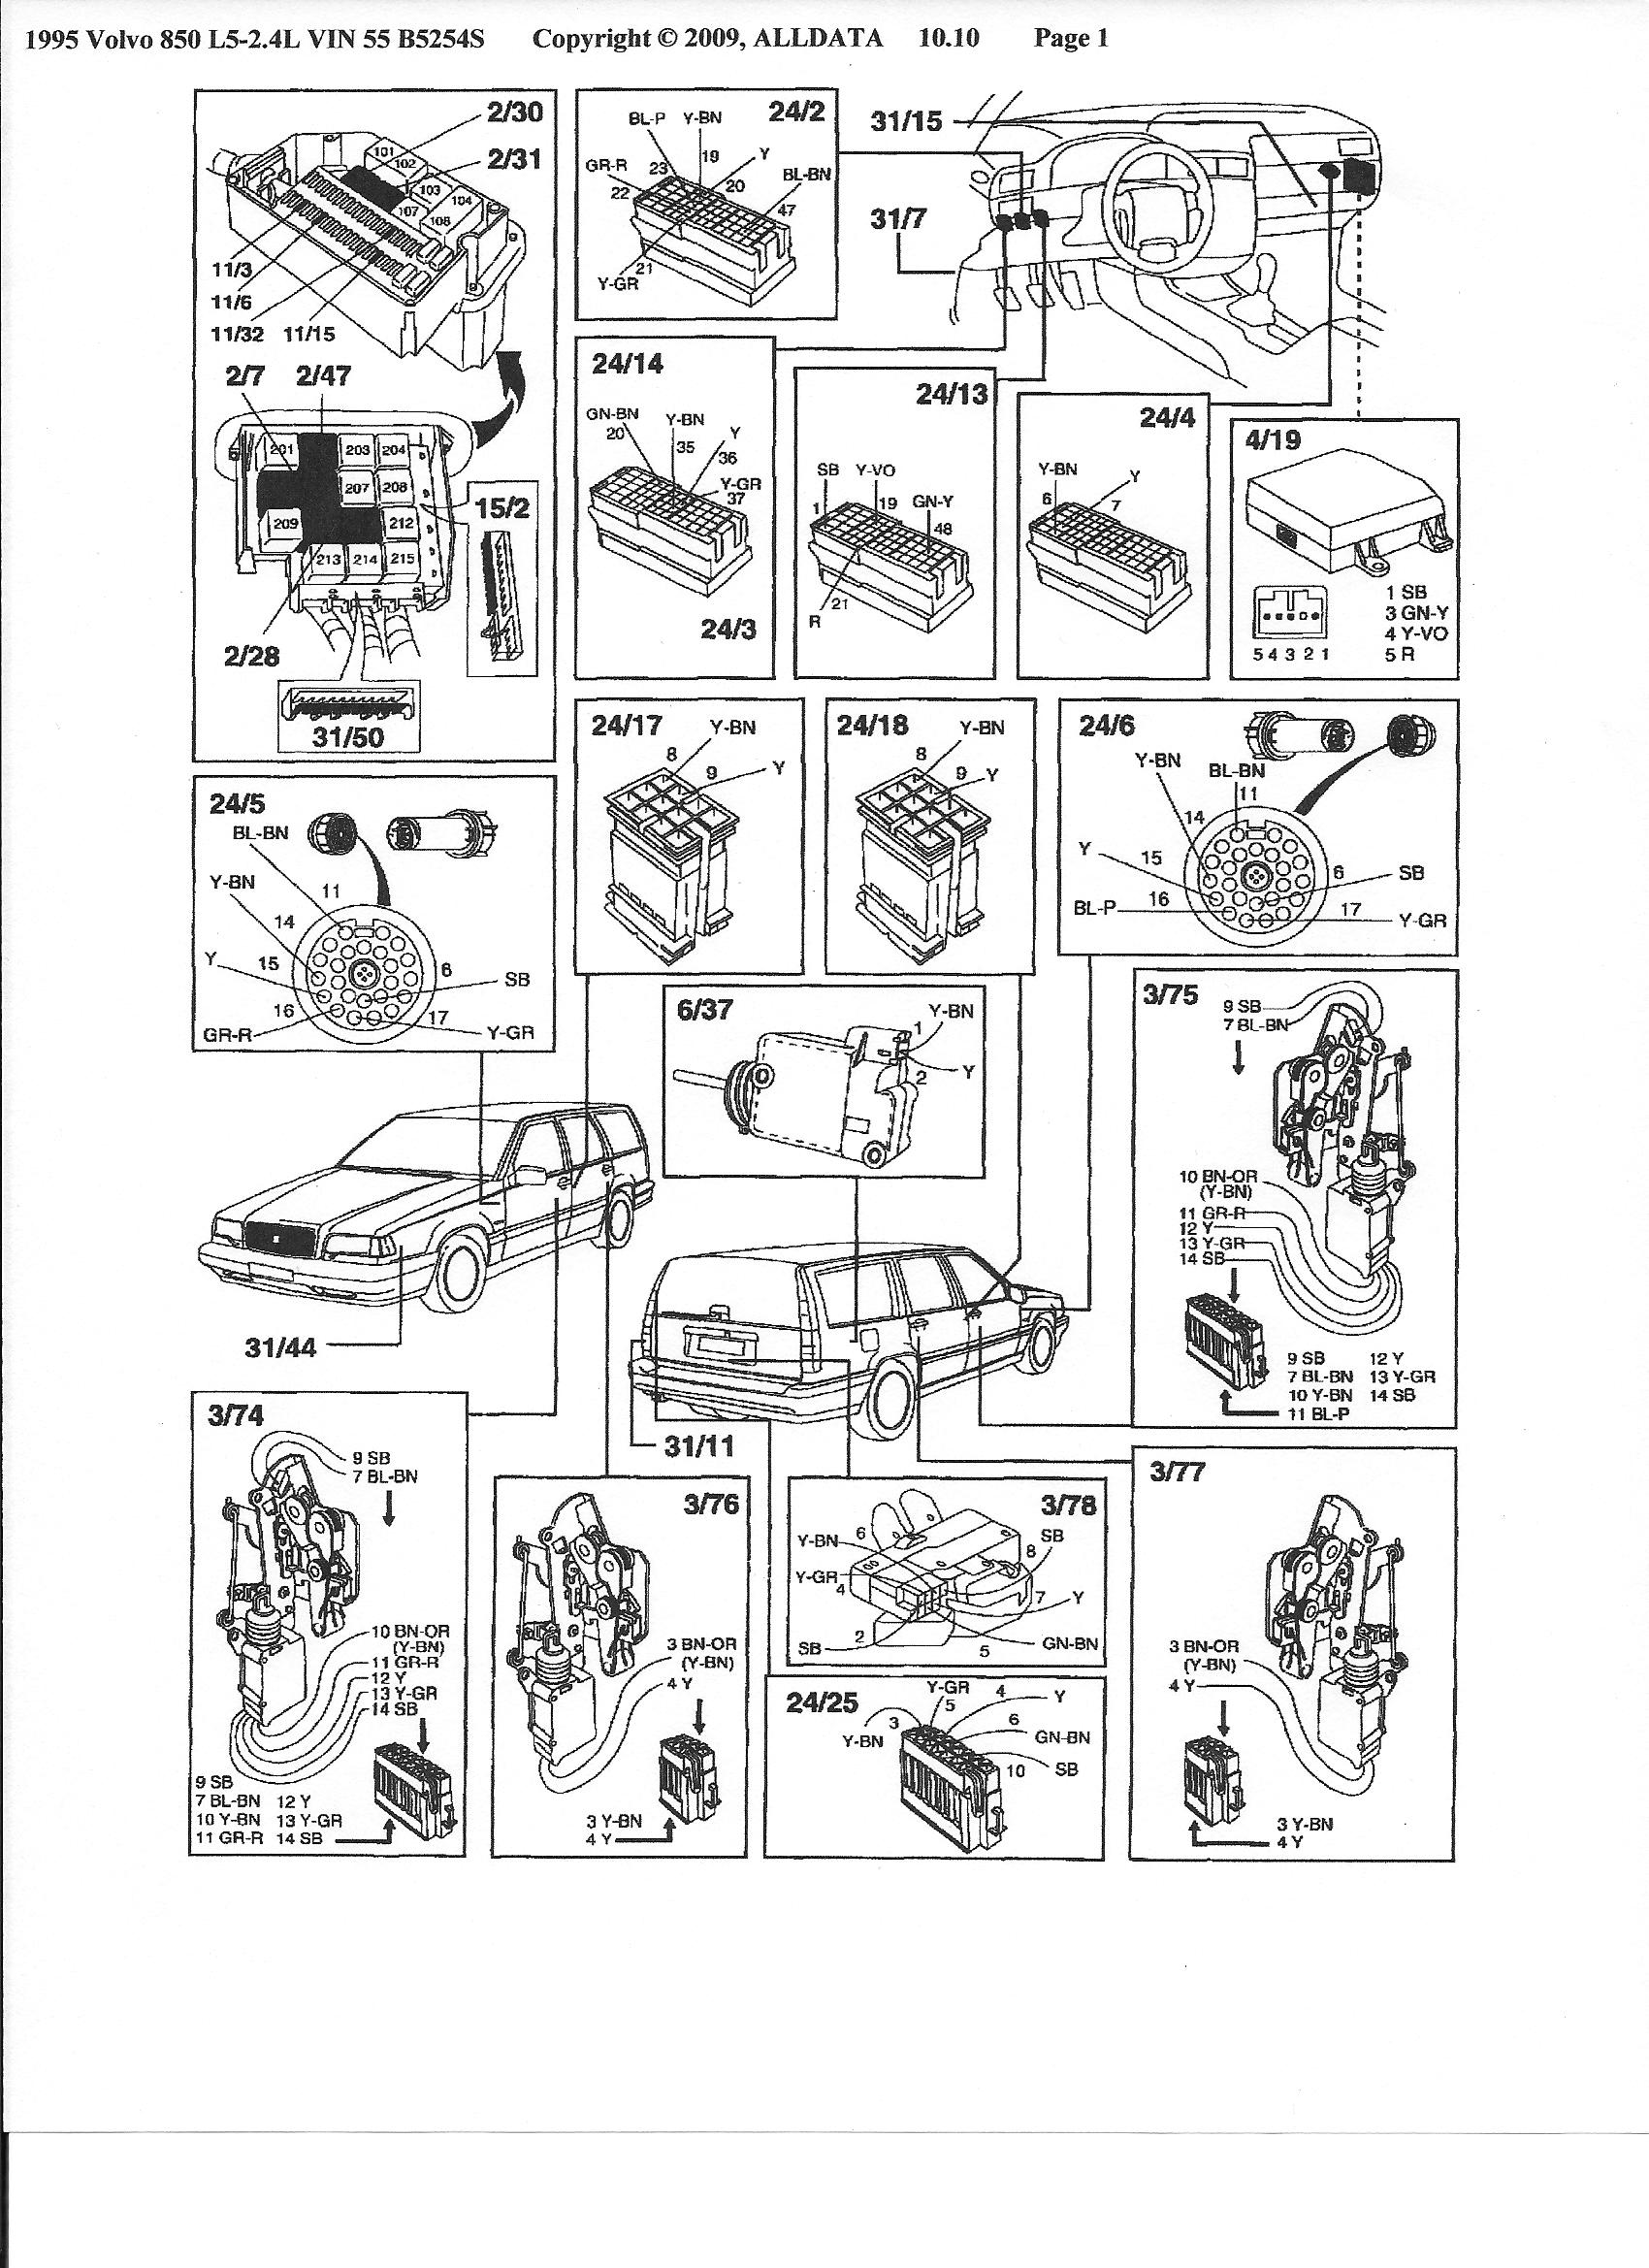 95 Volvo 850 Parts Diagram Wiring Diagrams 1998 S70 Shift Lock Get Free Image About Performance